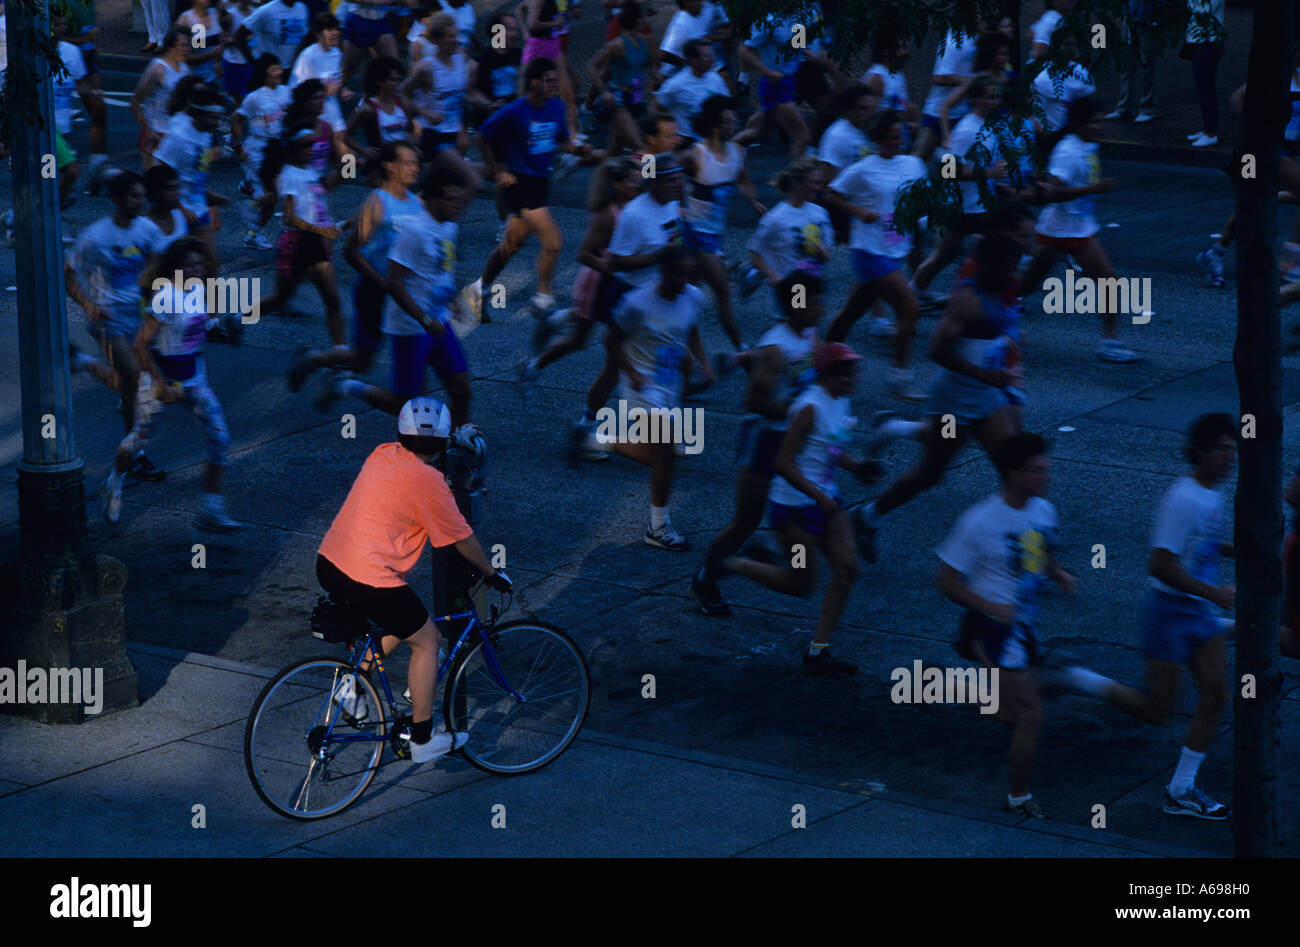 Marathon race downtown Seattle blurred runners, Seattle, Washington USA - Stock Image